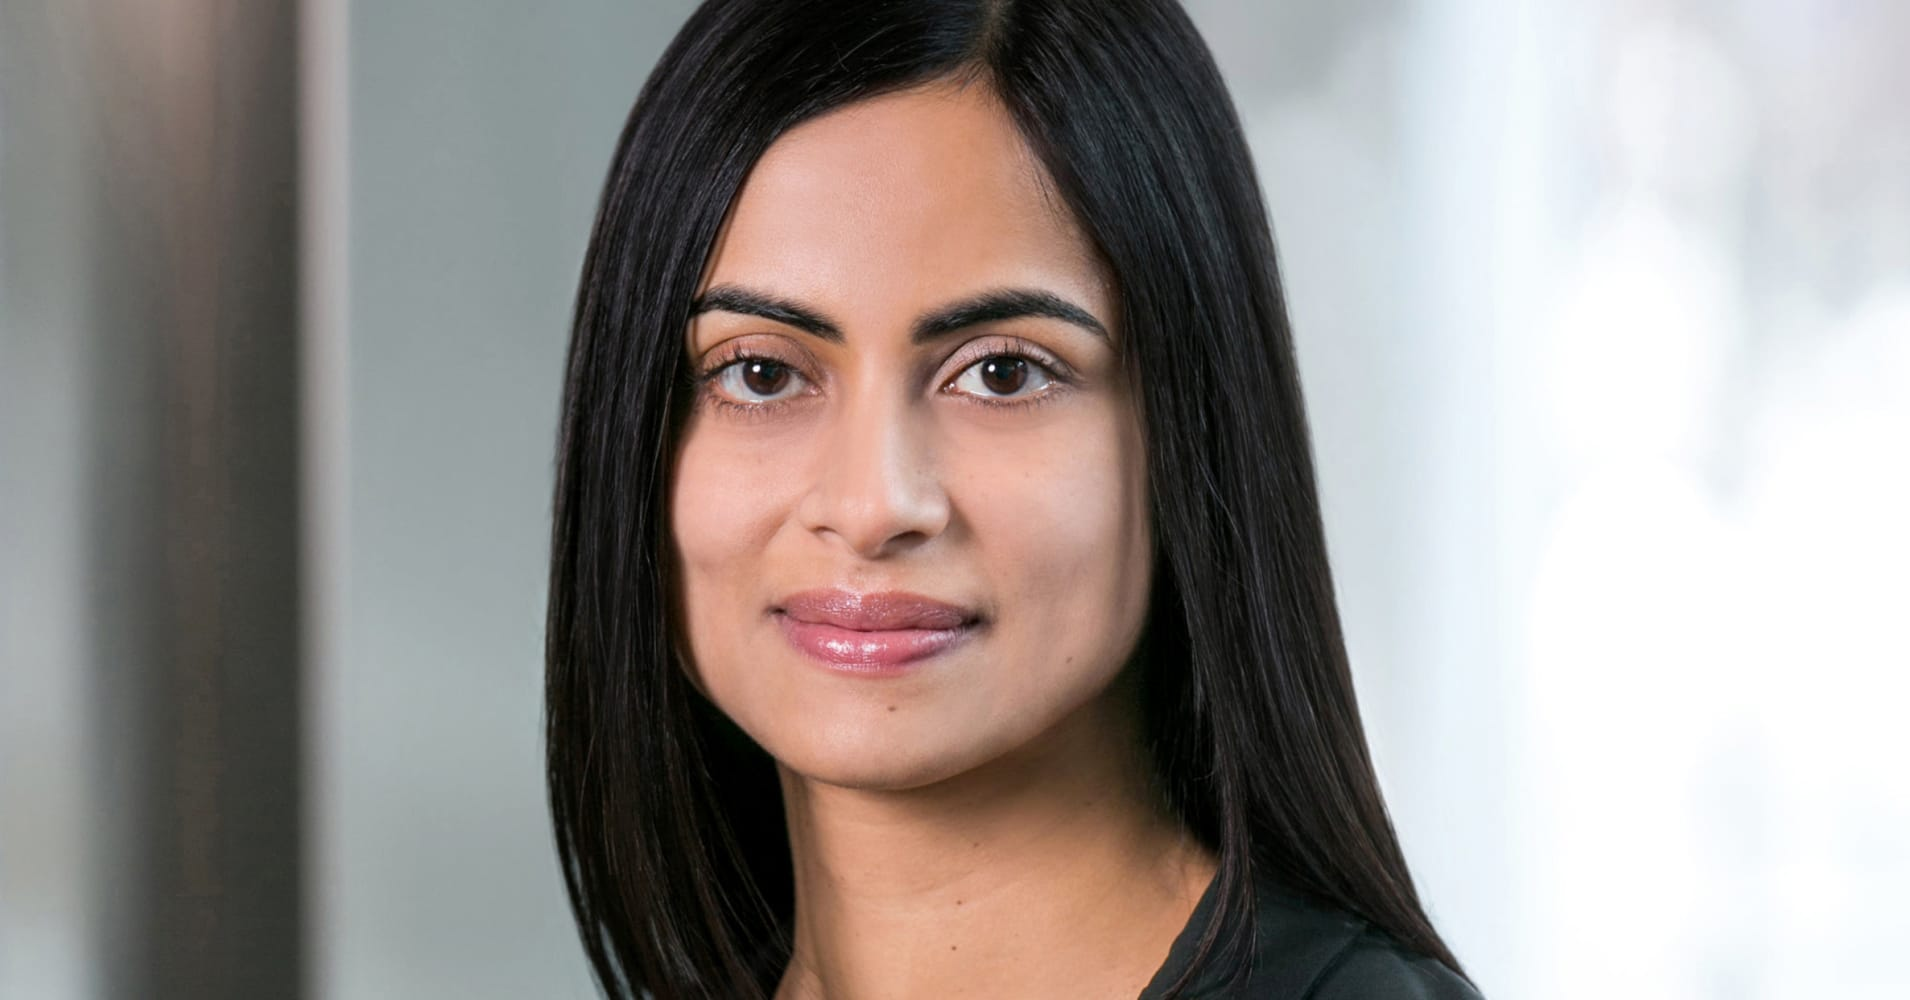 Dhivya Suryadevara Named New Chief Financial Officer Of Gm